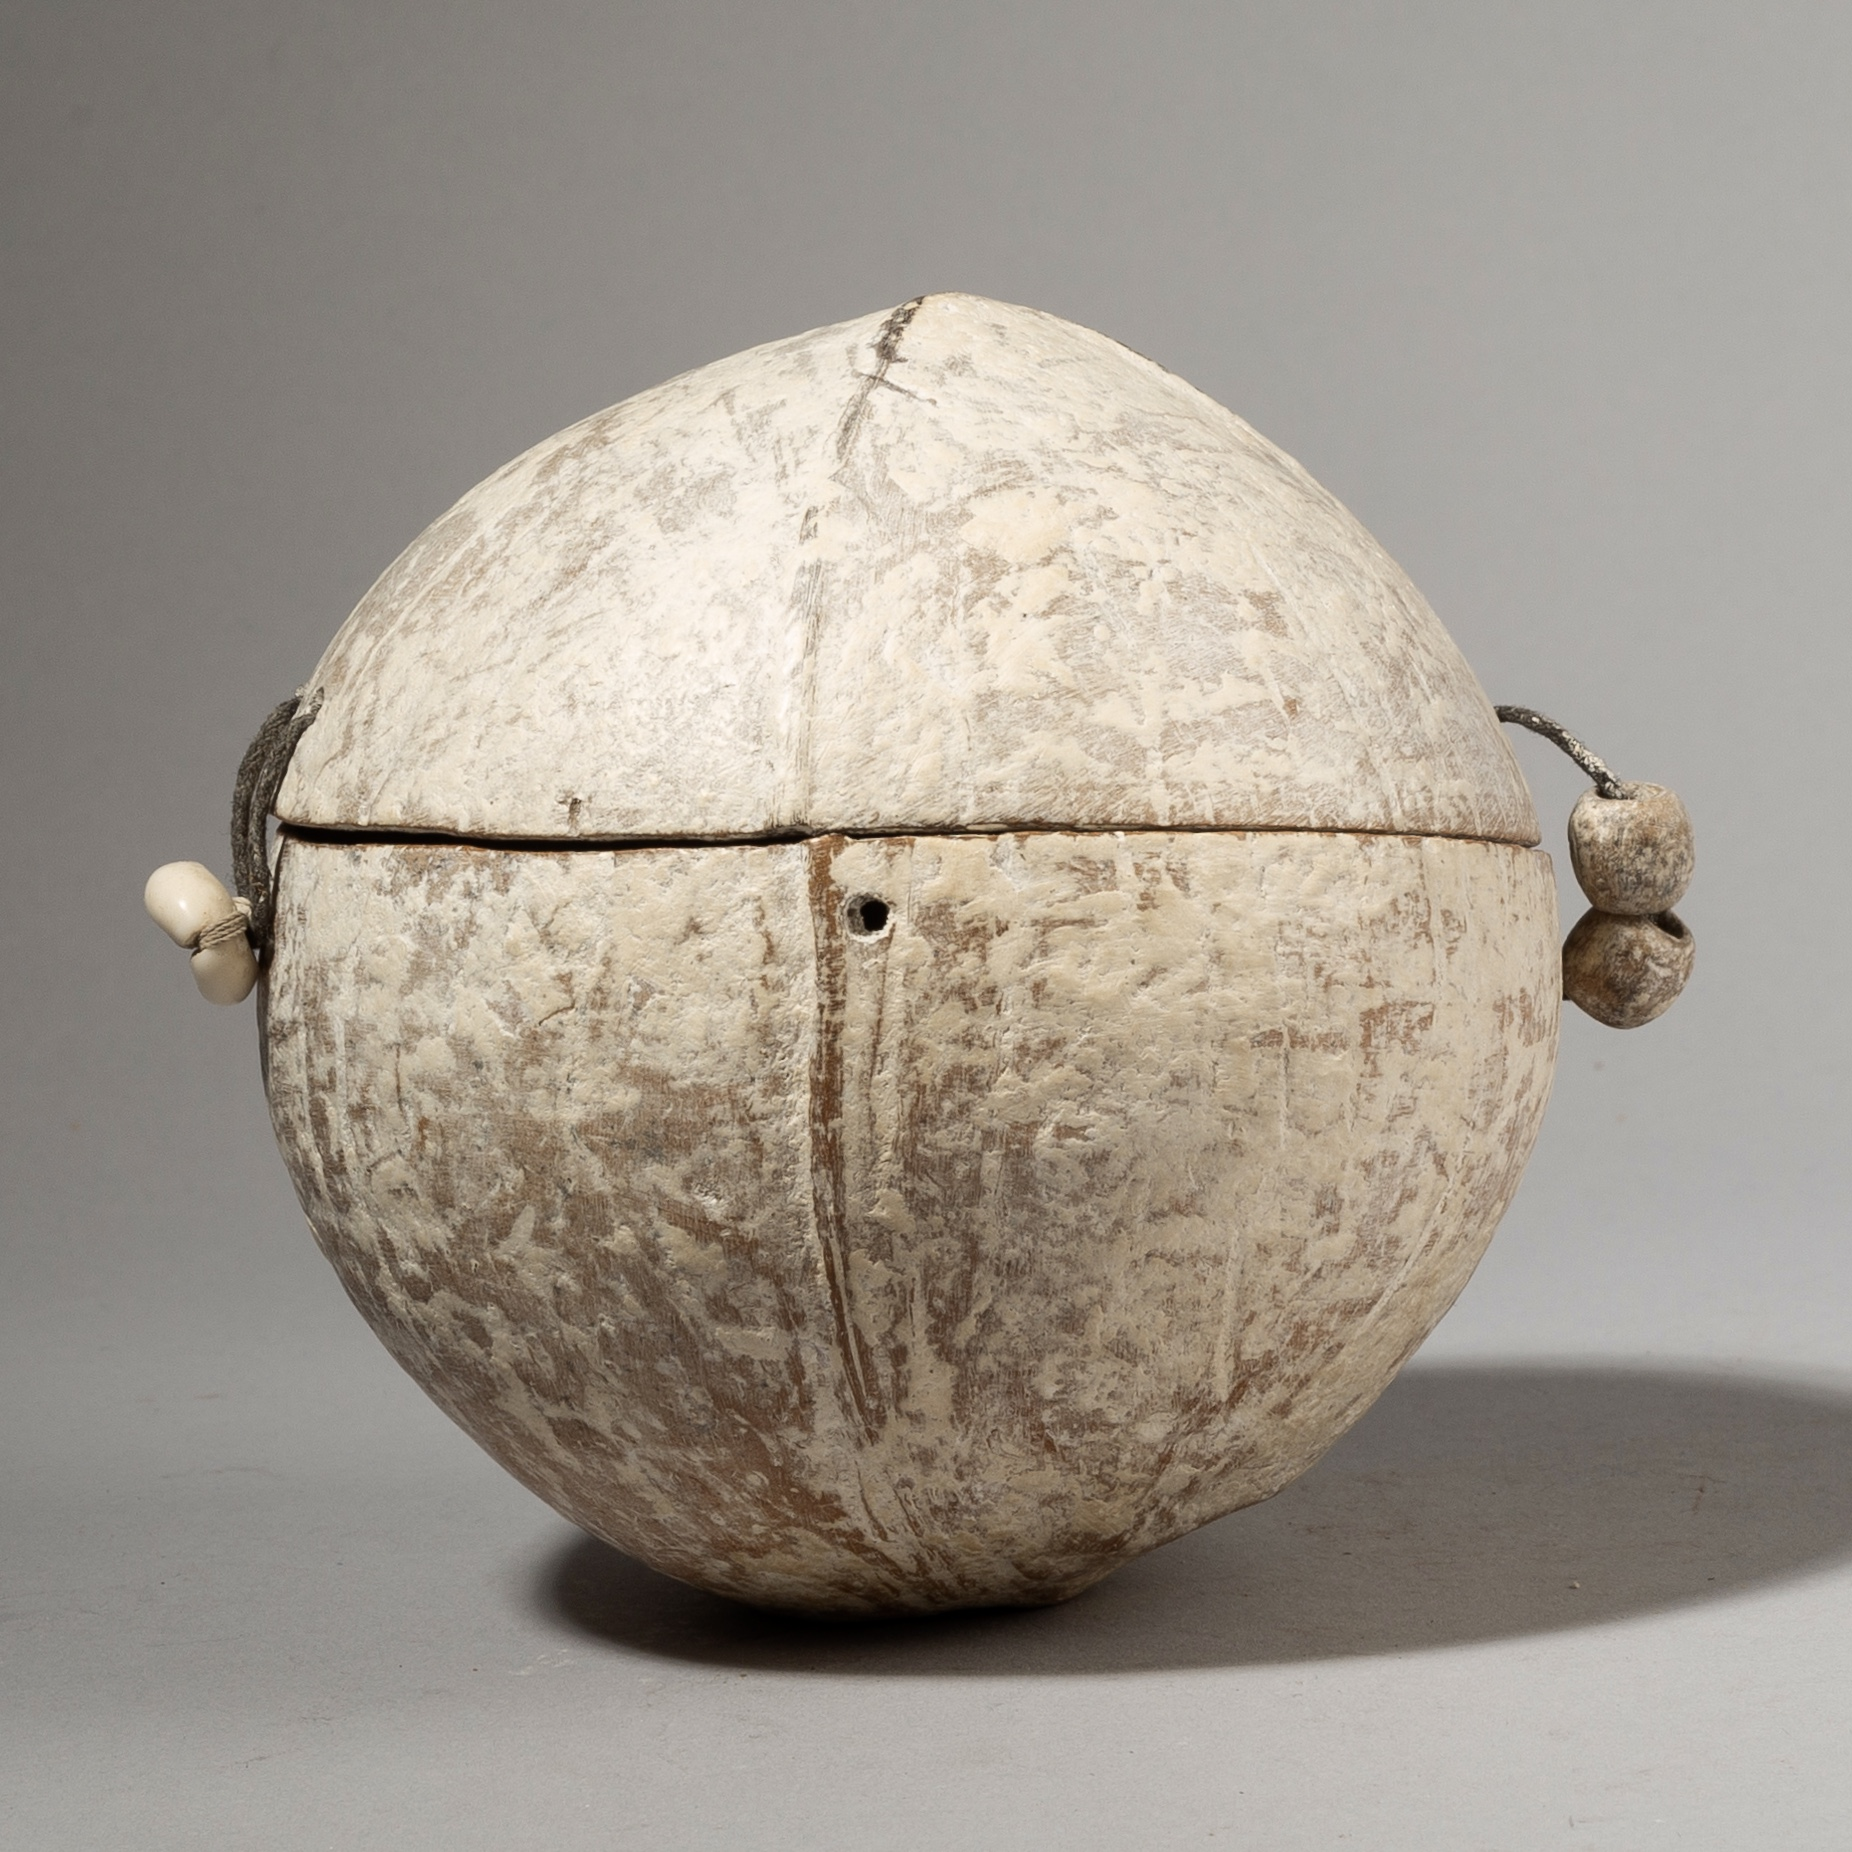 HA SOLD A UNIQUE CHARM POT, WITH HORN, SHELLS, SEEDS, METAL, EWE TRIBE TOGO W AFRICA  ( No 3974 )